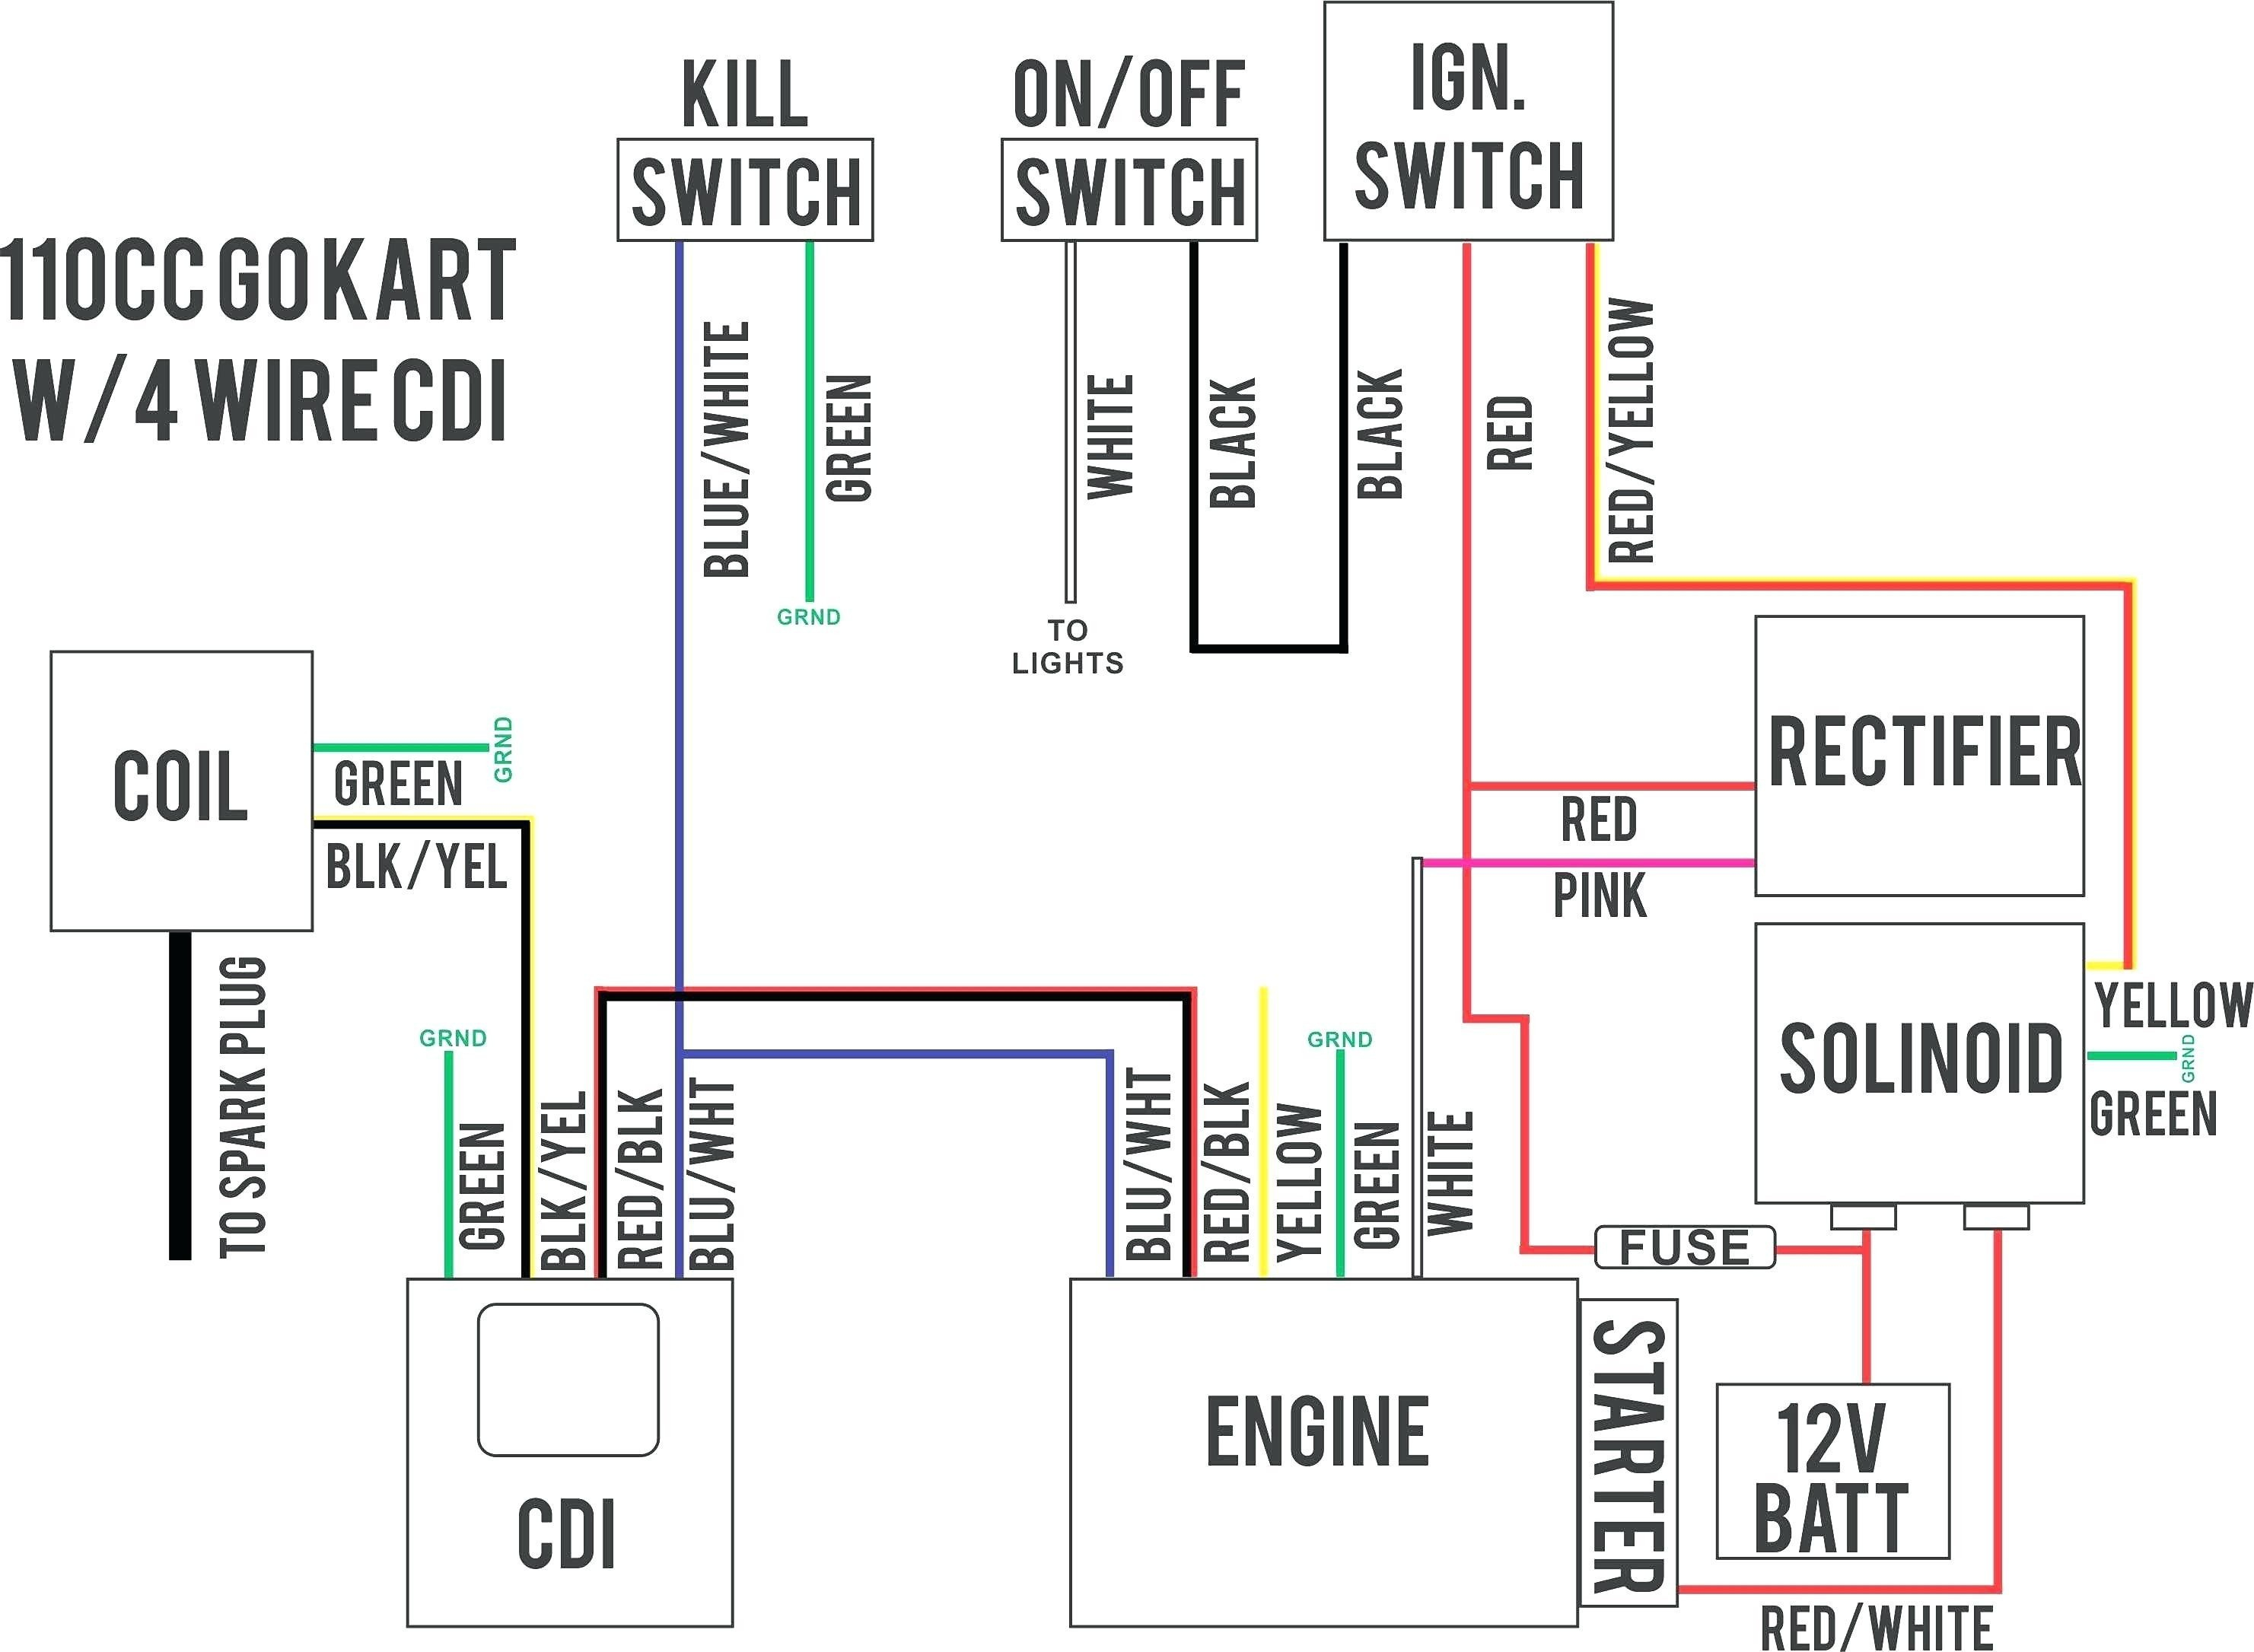 Generac Transfer Switch Wiring Diagram from wholefoodsonabudget.com